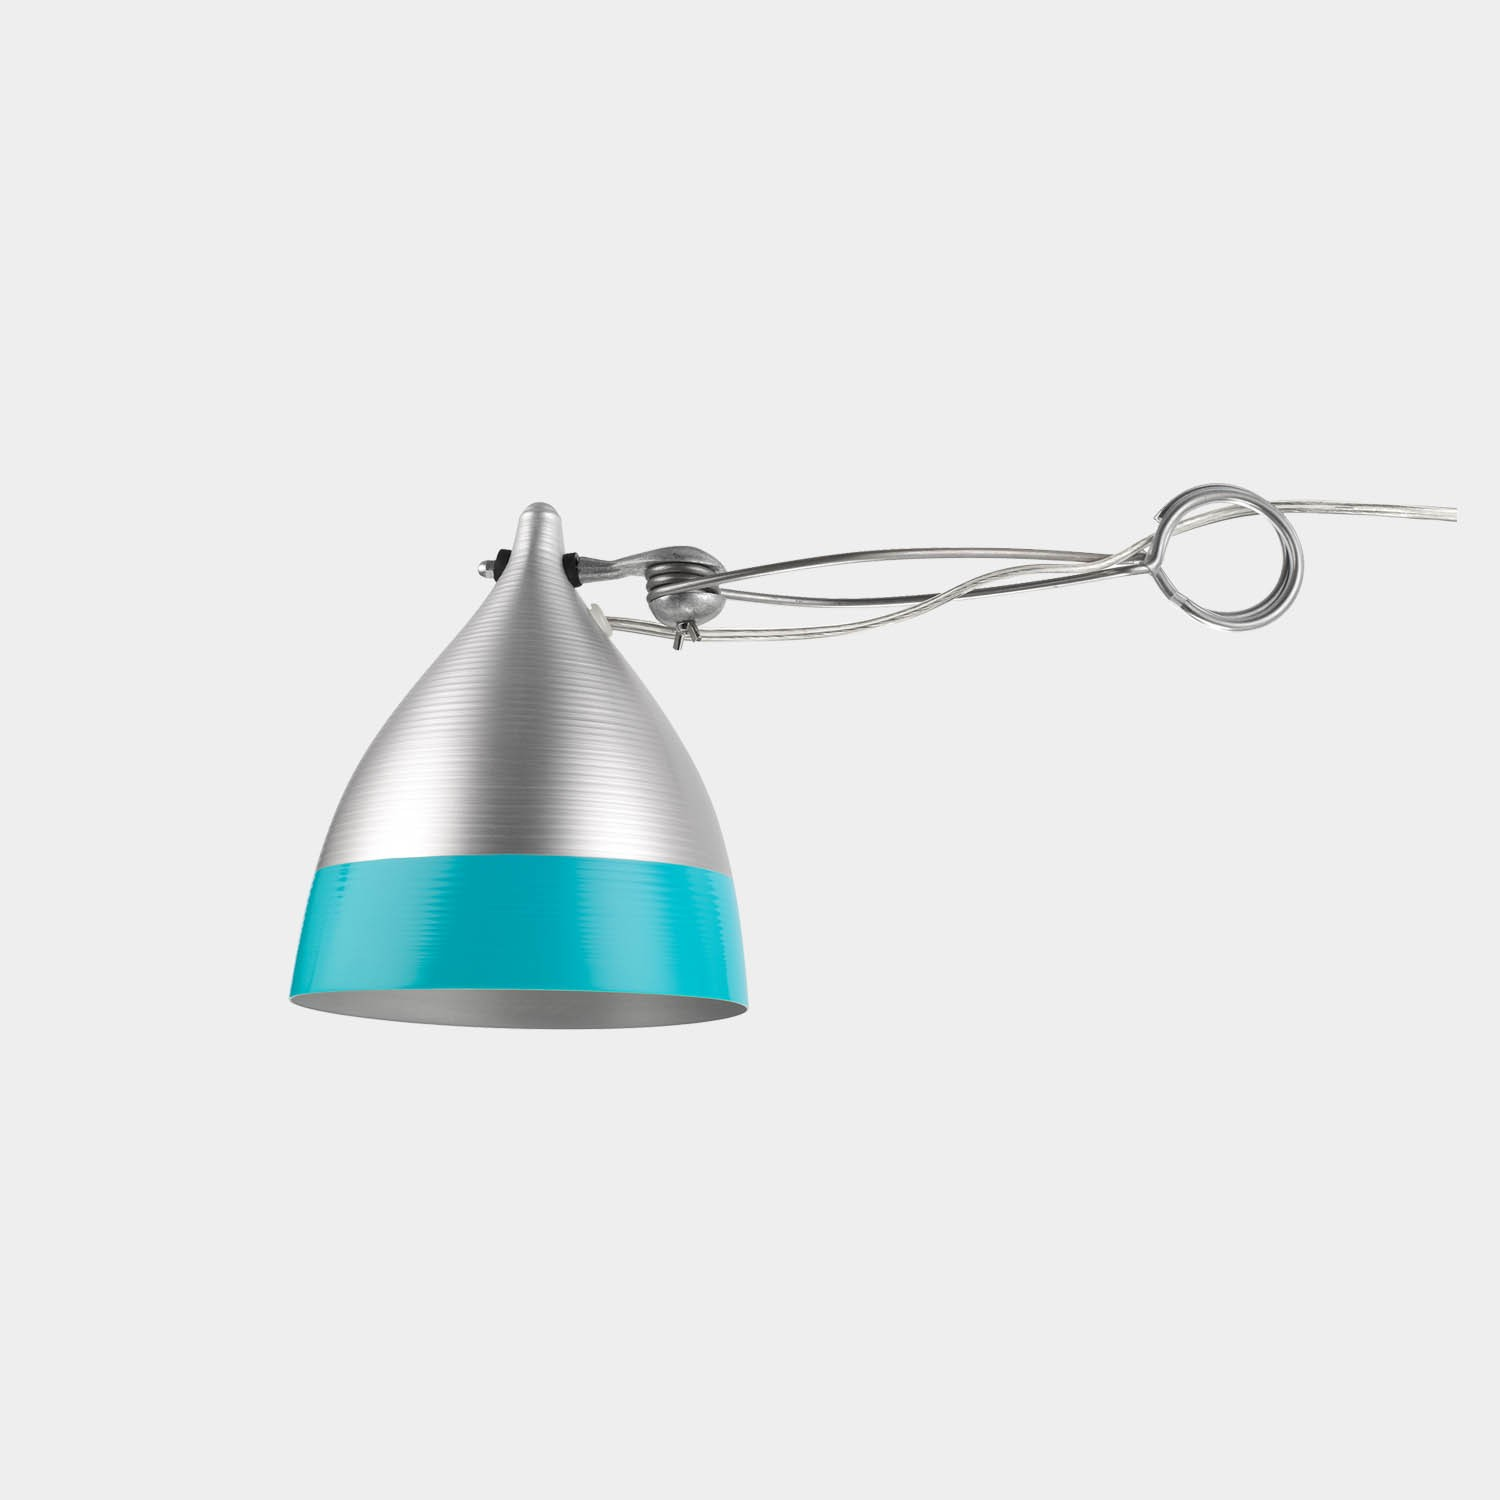 Clip-on Lamp Cornet Wimple Shade, Bicolor